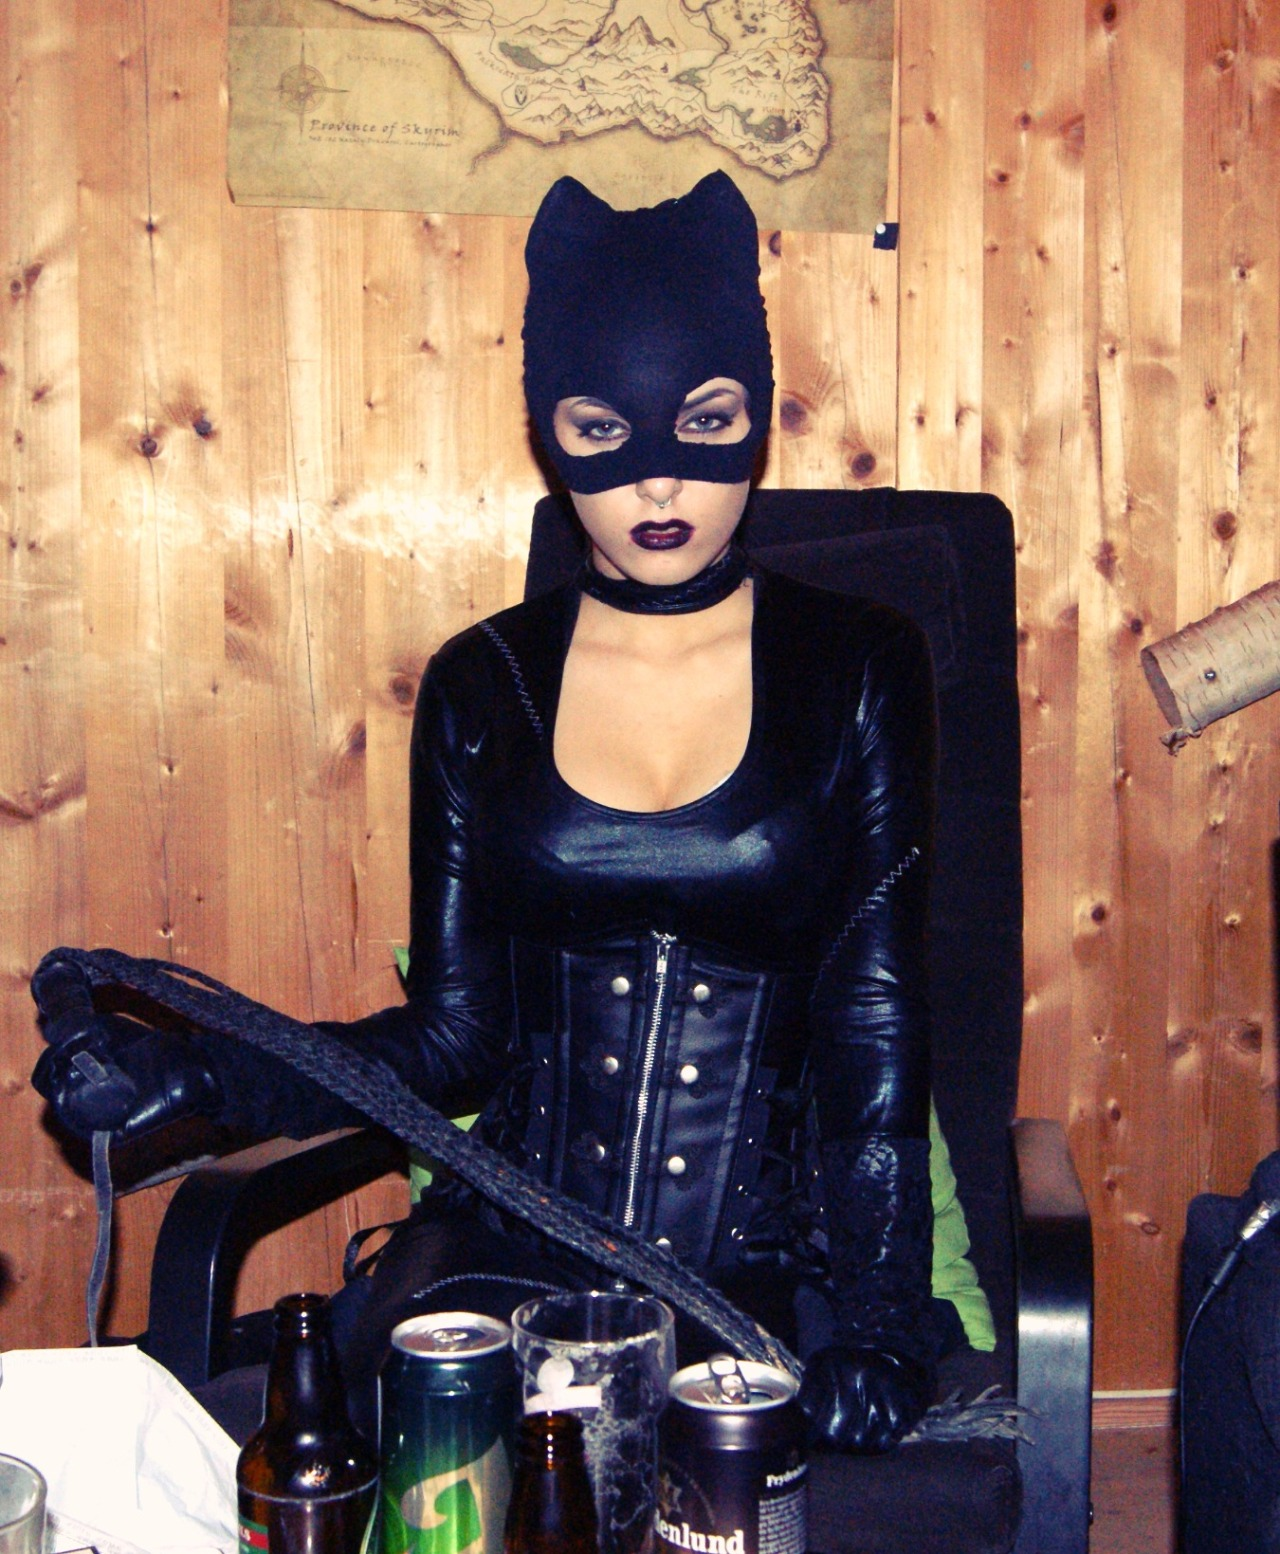 Last night I was at a carneval and this was my costume. Catwoman!